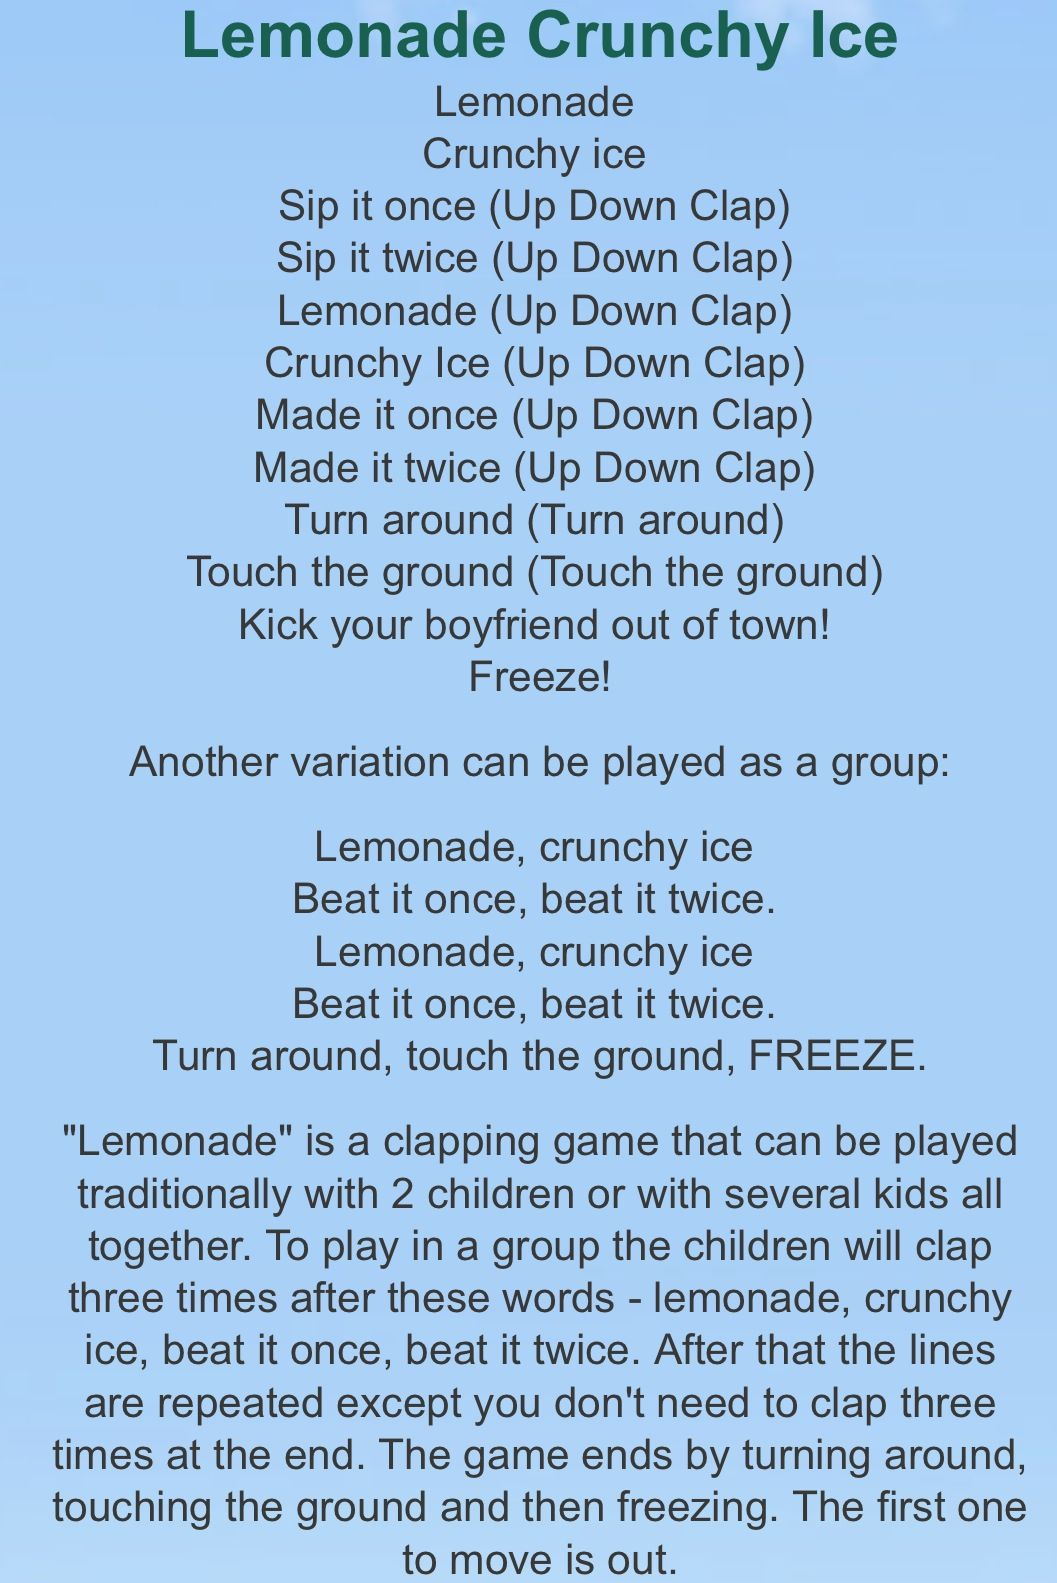 Lemonade Crunchy Ice Hand Clapping Game Clapping Games Hand Clapping Games Songs For Toddlers That i can make your hands clap that i can make your hands clap (turn it up) that i can make your hands clap. lemonade crunchy ice hand clapping game